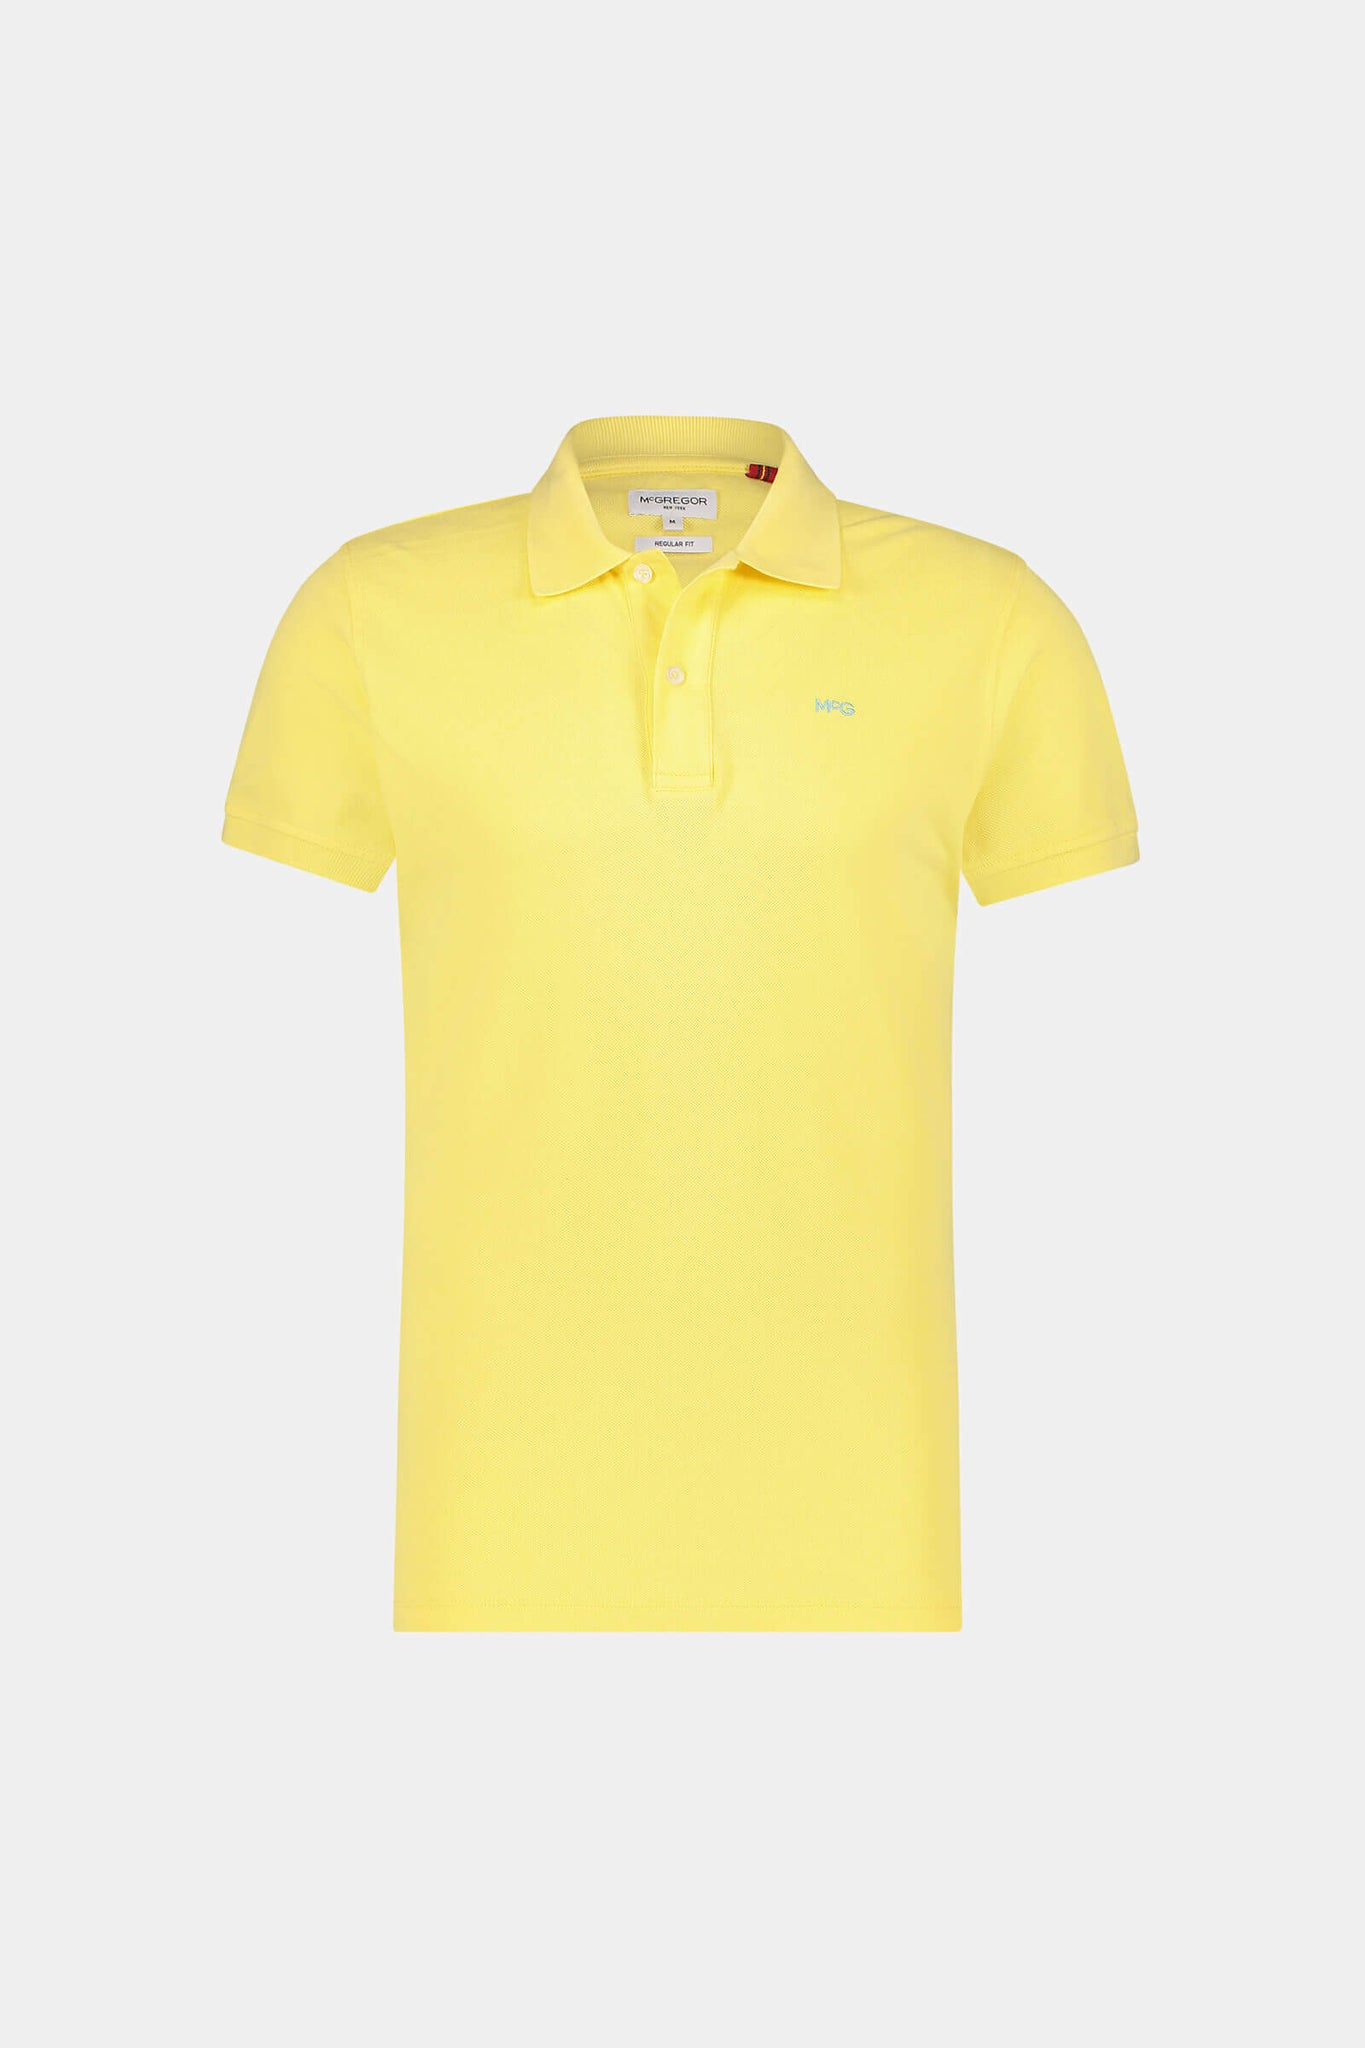 Regular fit classic pique polo